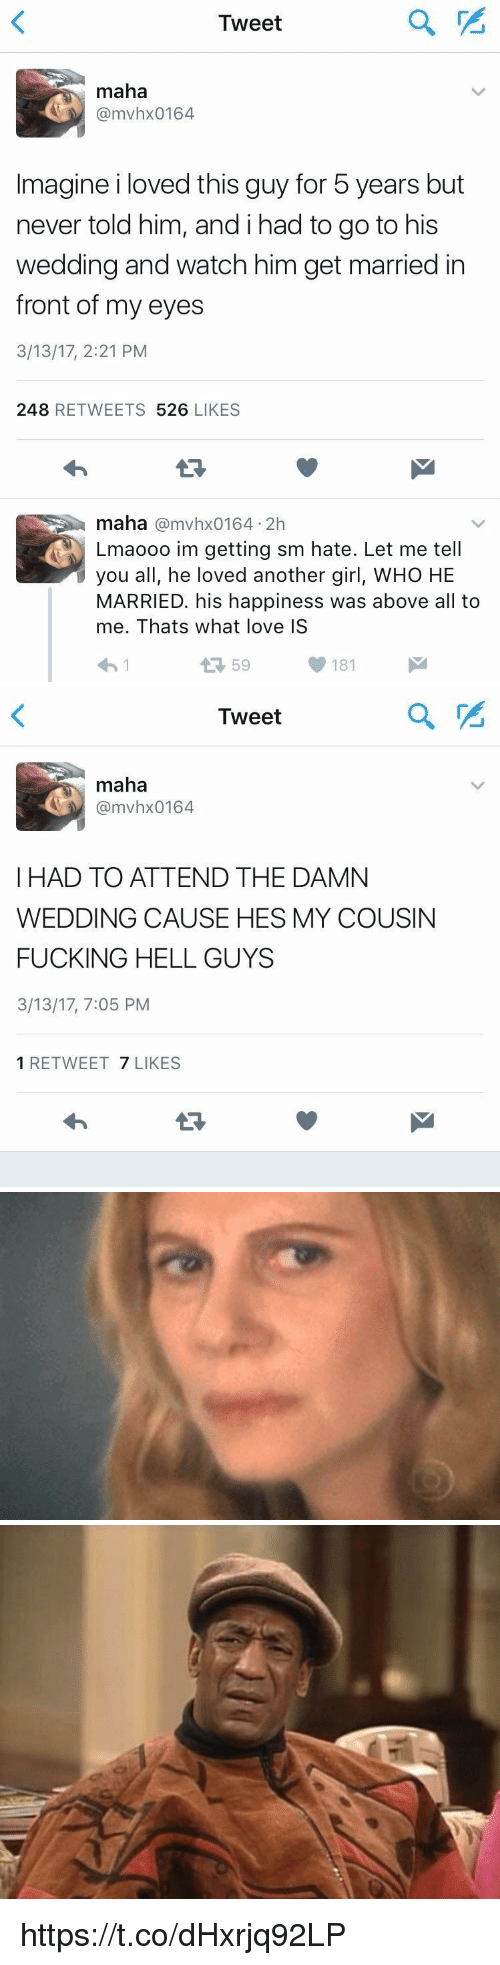 Lovedating: Tweet  maha  @mvhx0164  Imagine i loved this guy for 5 years but  never told him, andihad to go to his  wedding and watch him get married in  front of my eyes  3/13/17, 2:21 PM  248 RETWEETS 526 LIKES  maha @mvhx0164 2h  Lmaooo im getting sm hate. Let me tell  you all, he loved another girl, WHO HE  MARRIED. his happiness was above all to  me. Thats what love IS  わ!  59  181   Tweet  maha  @mvhx0164  I HAD TO ATTEND THE DAMN  WEDDING CAUSE HES MY COUSIN  FUCKING HELL GUYS  3/13/17, 7:05 PM  1 RETWEET 7 LIKES https://t.co/dHxrjq92LP